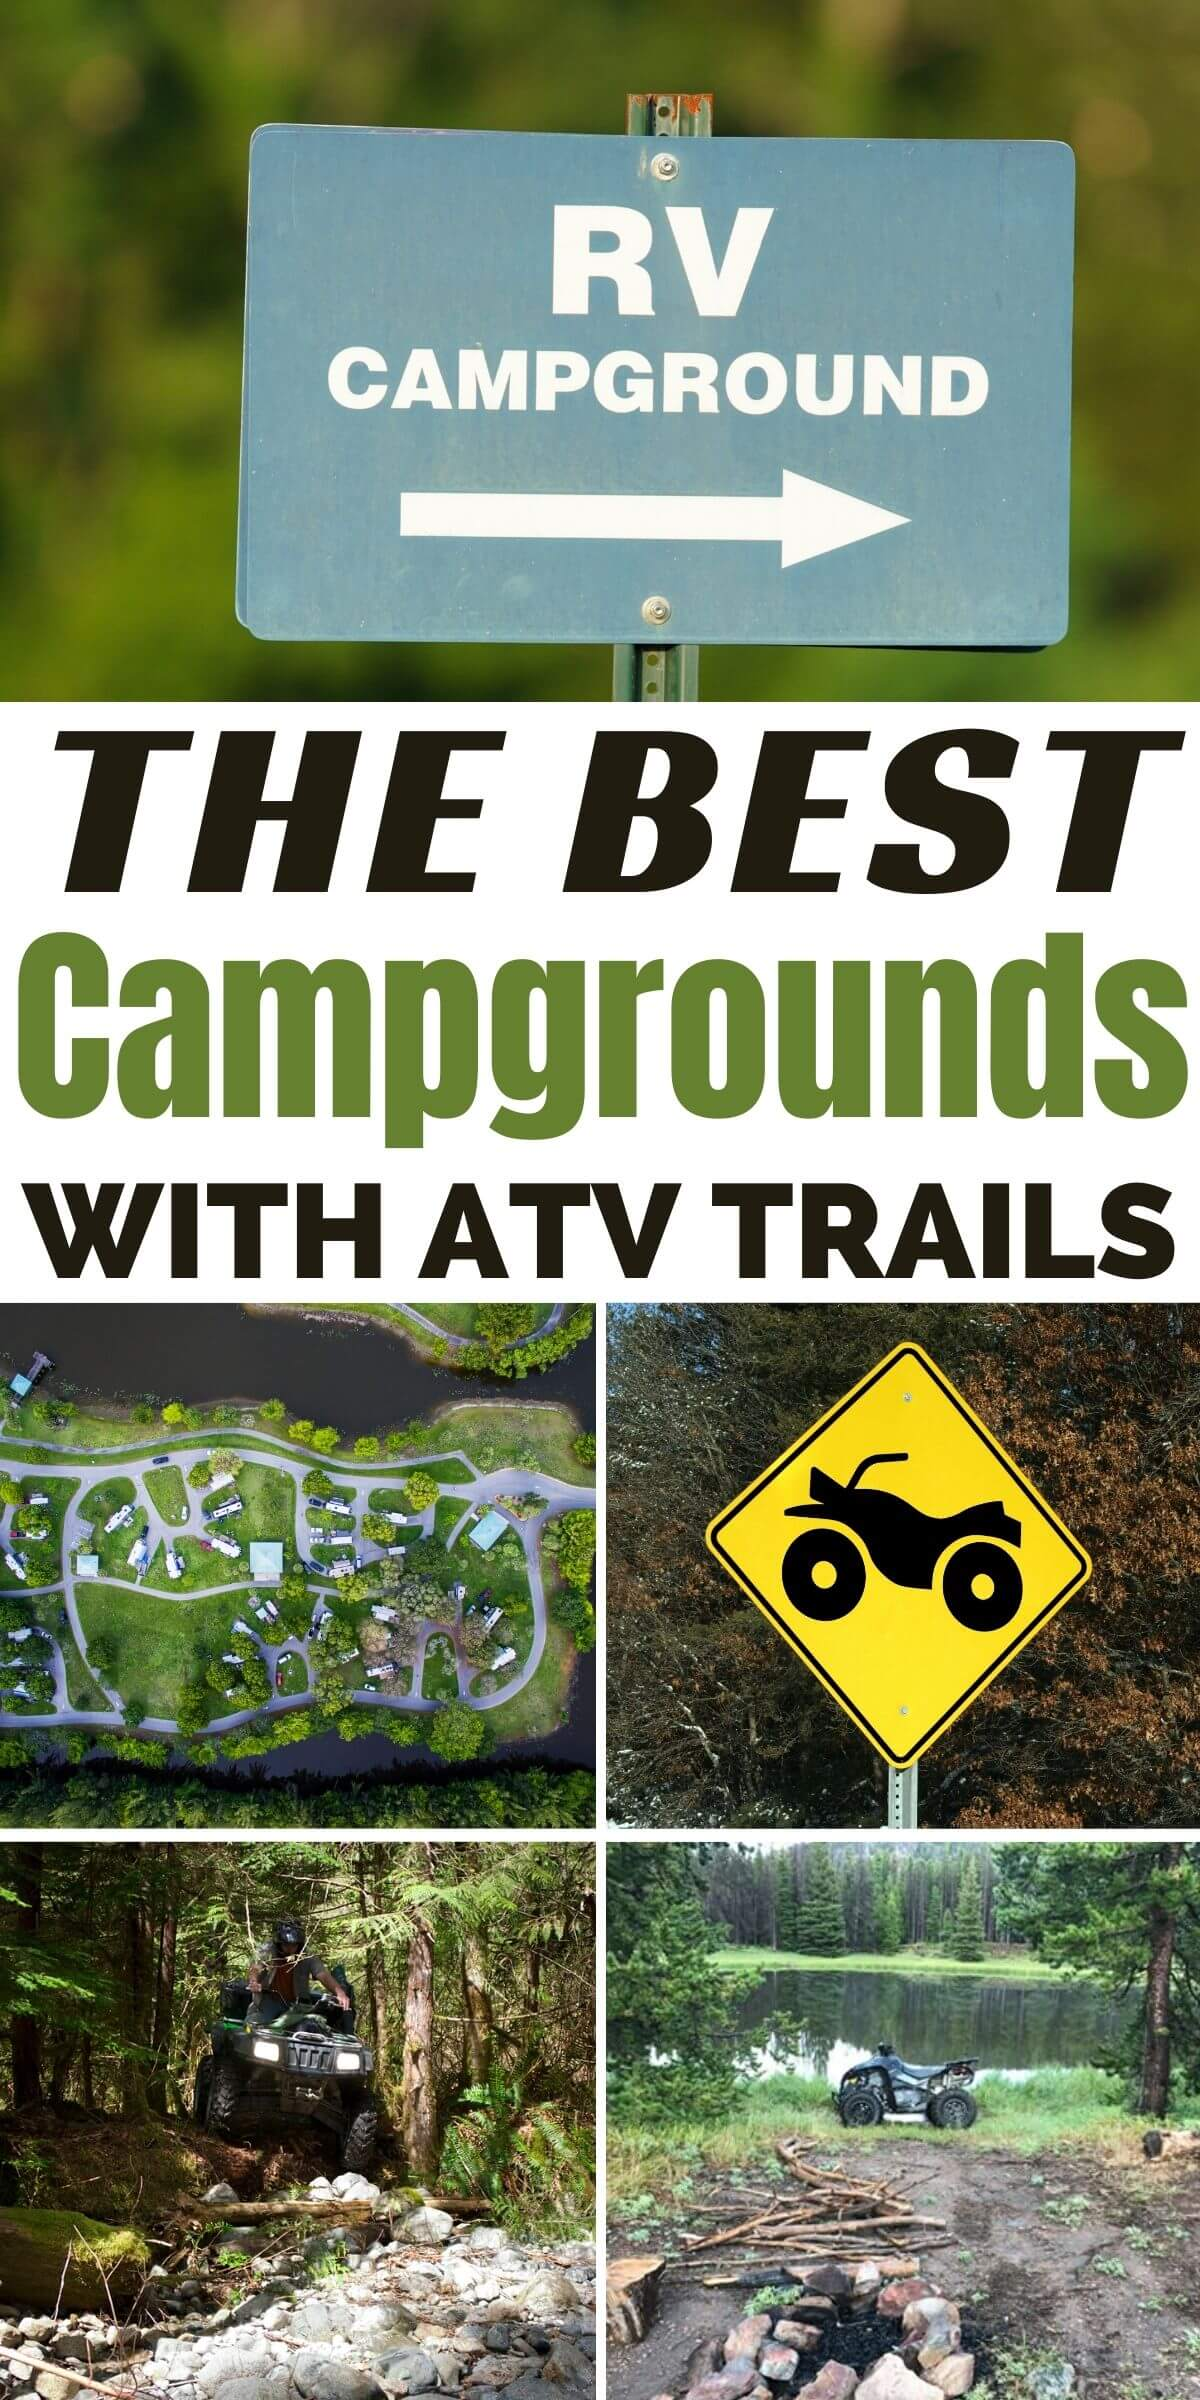 campgrounds with atv trails